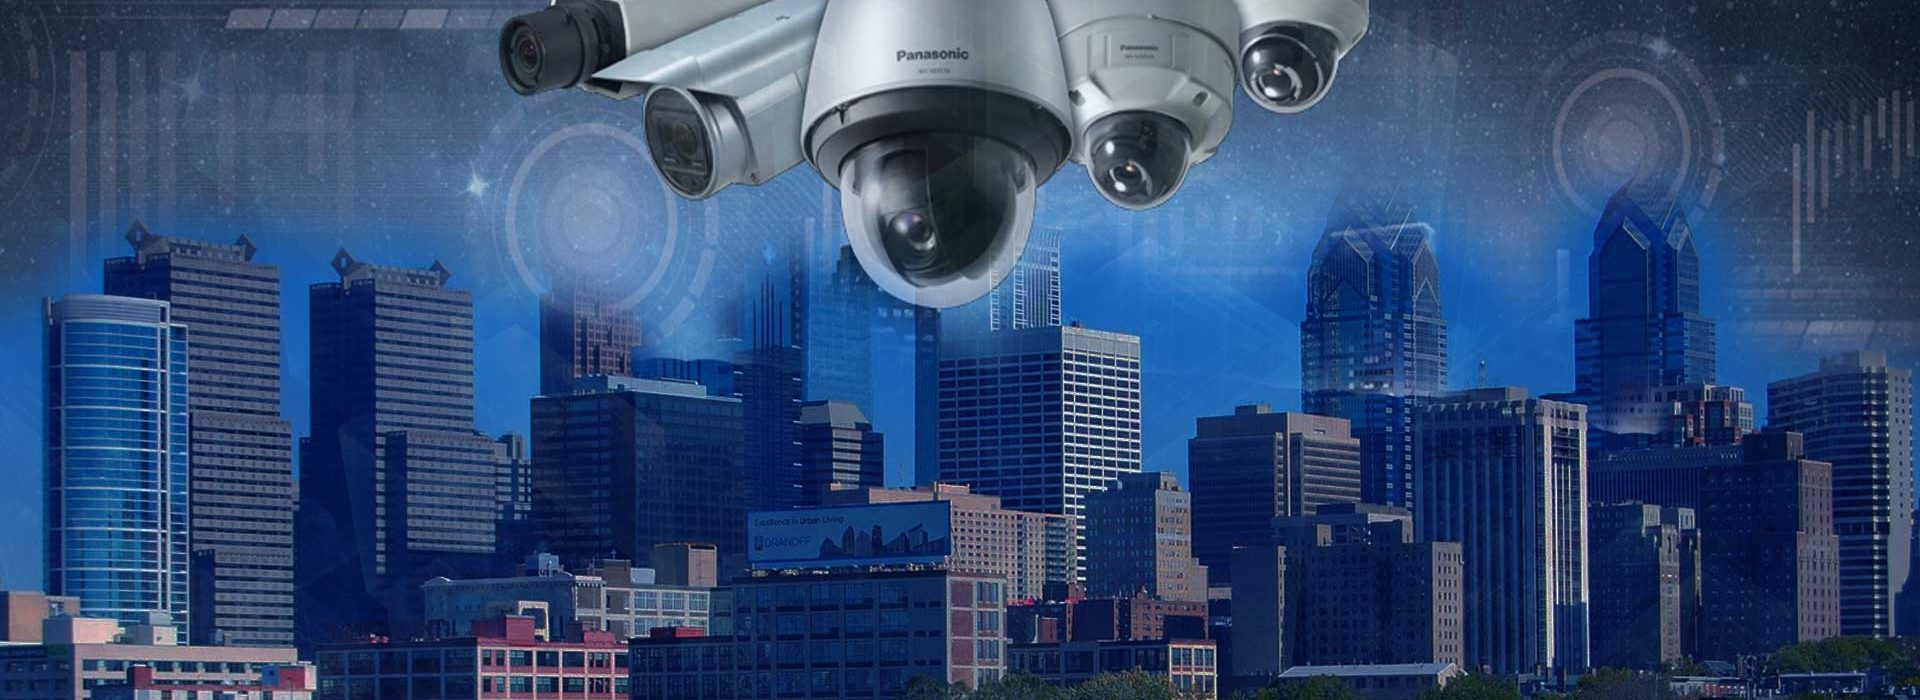 Commercial Security Installation is our Specialty!